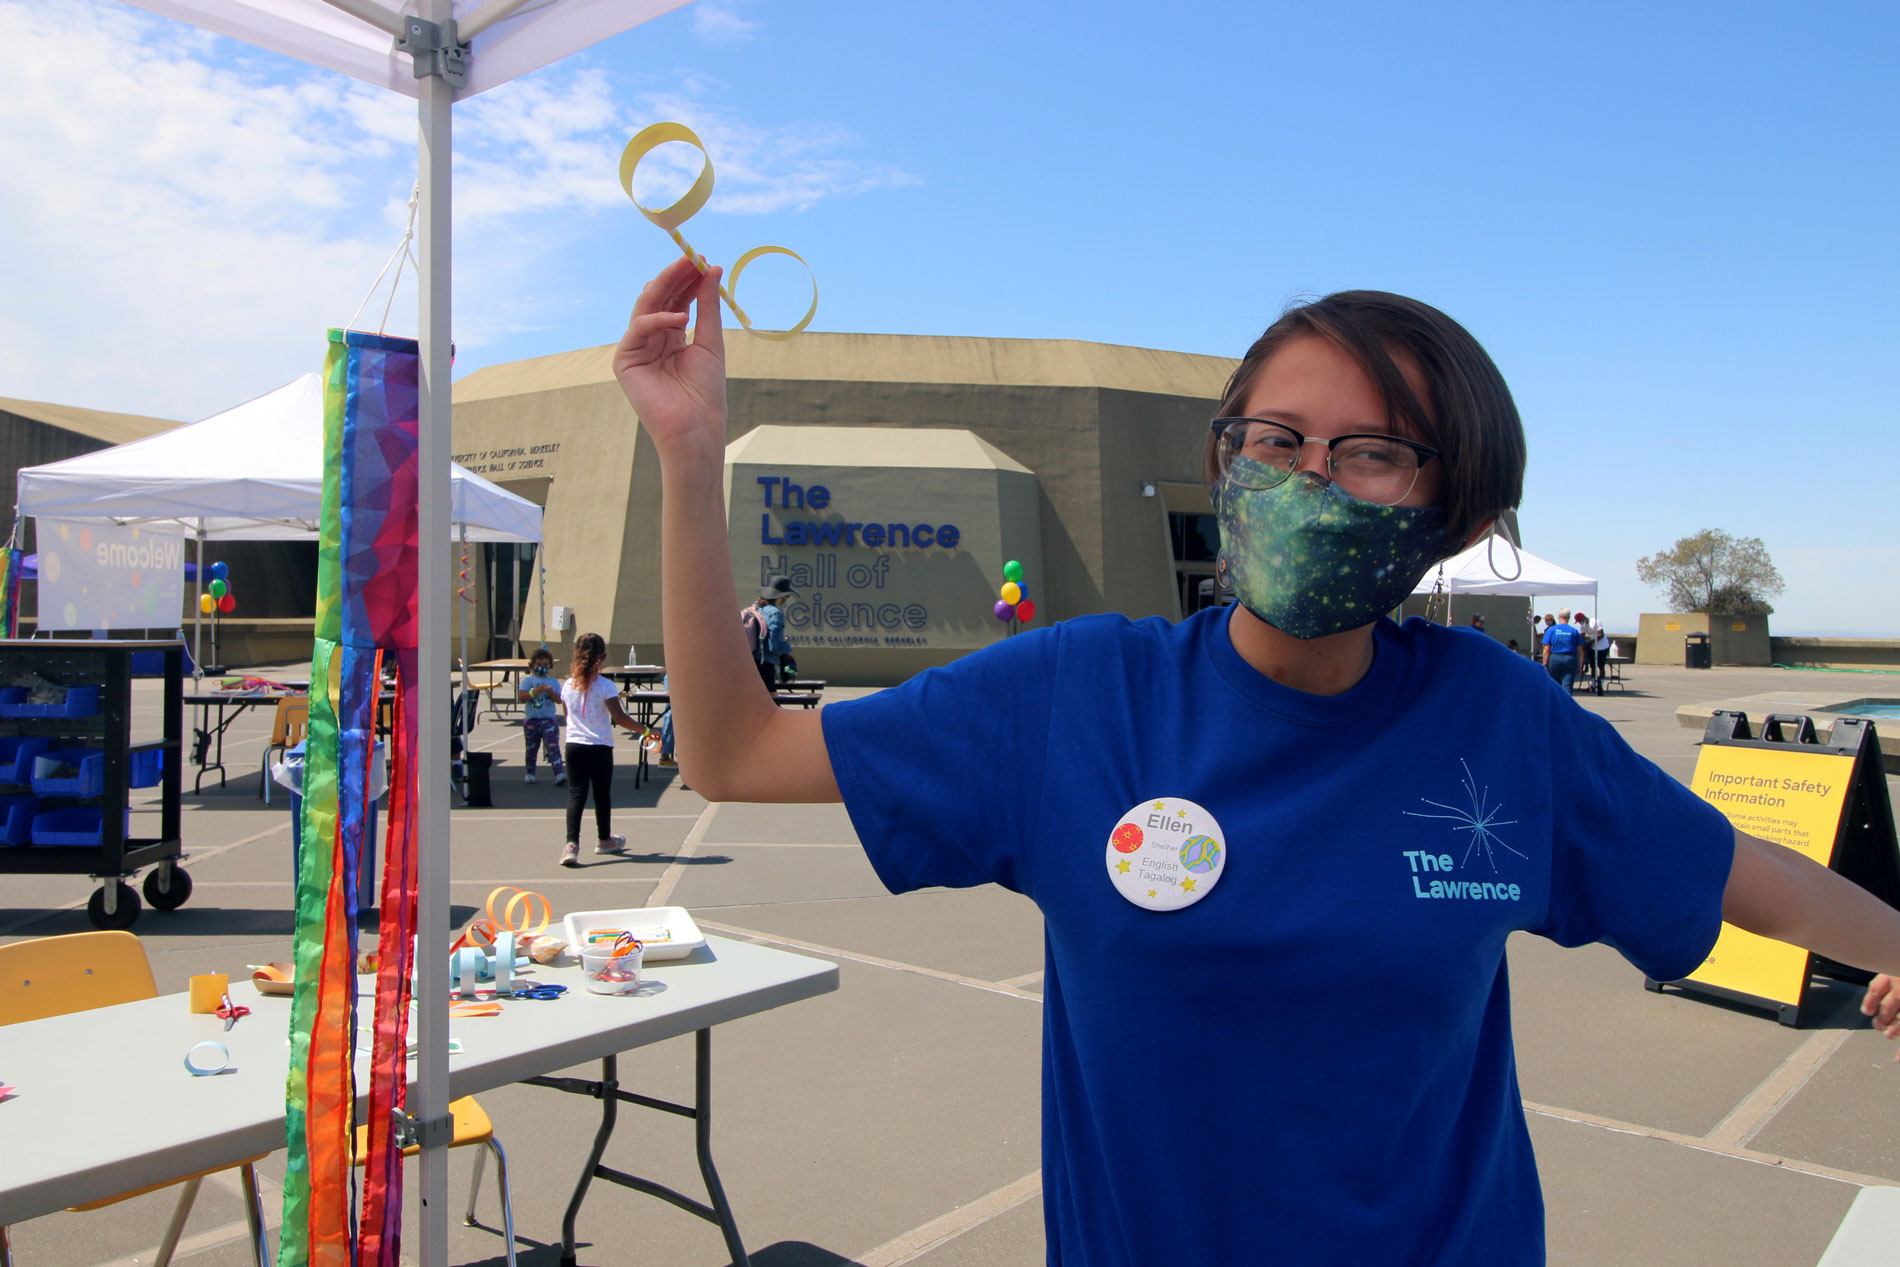 A staff member holding up a paper sculpture during Summer Fundays at The Lawrence